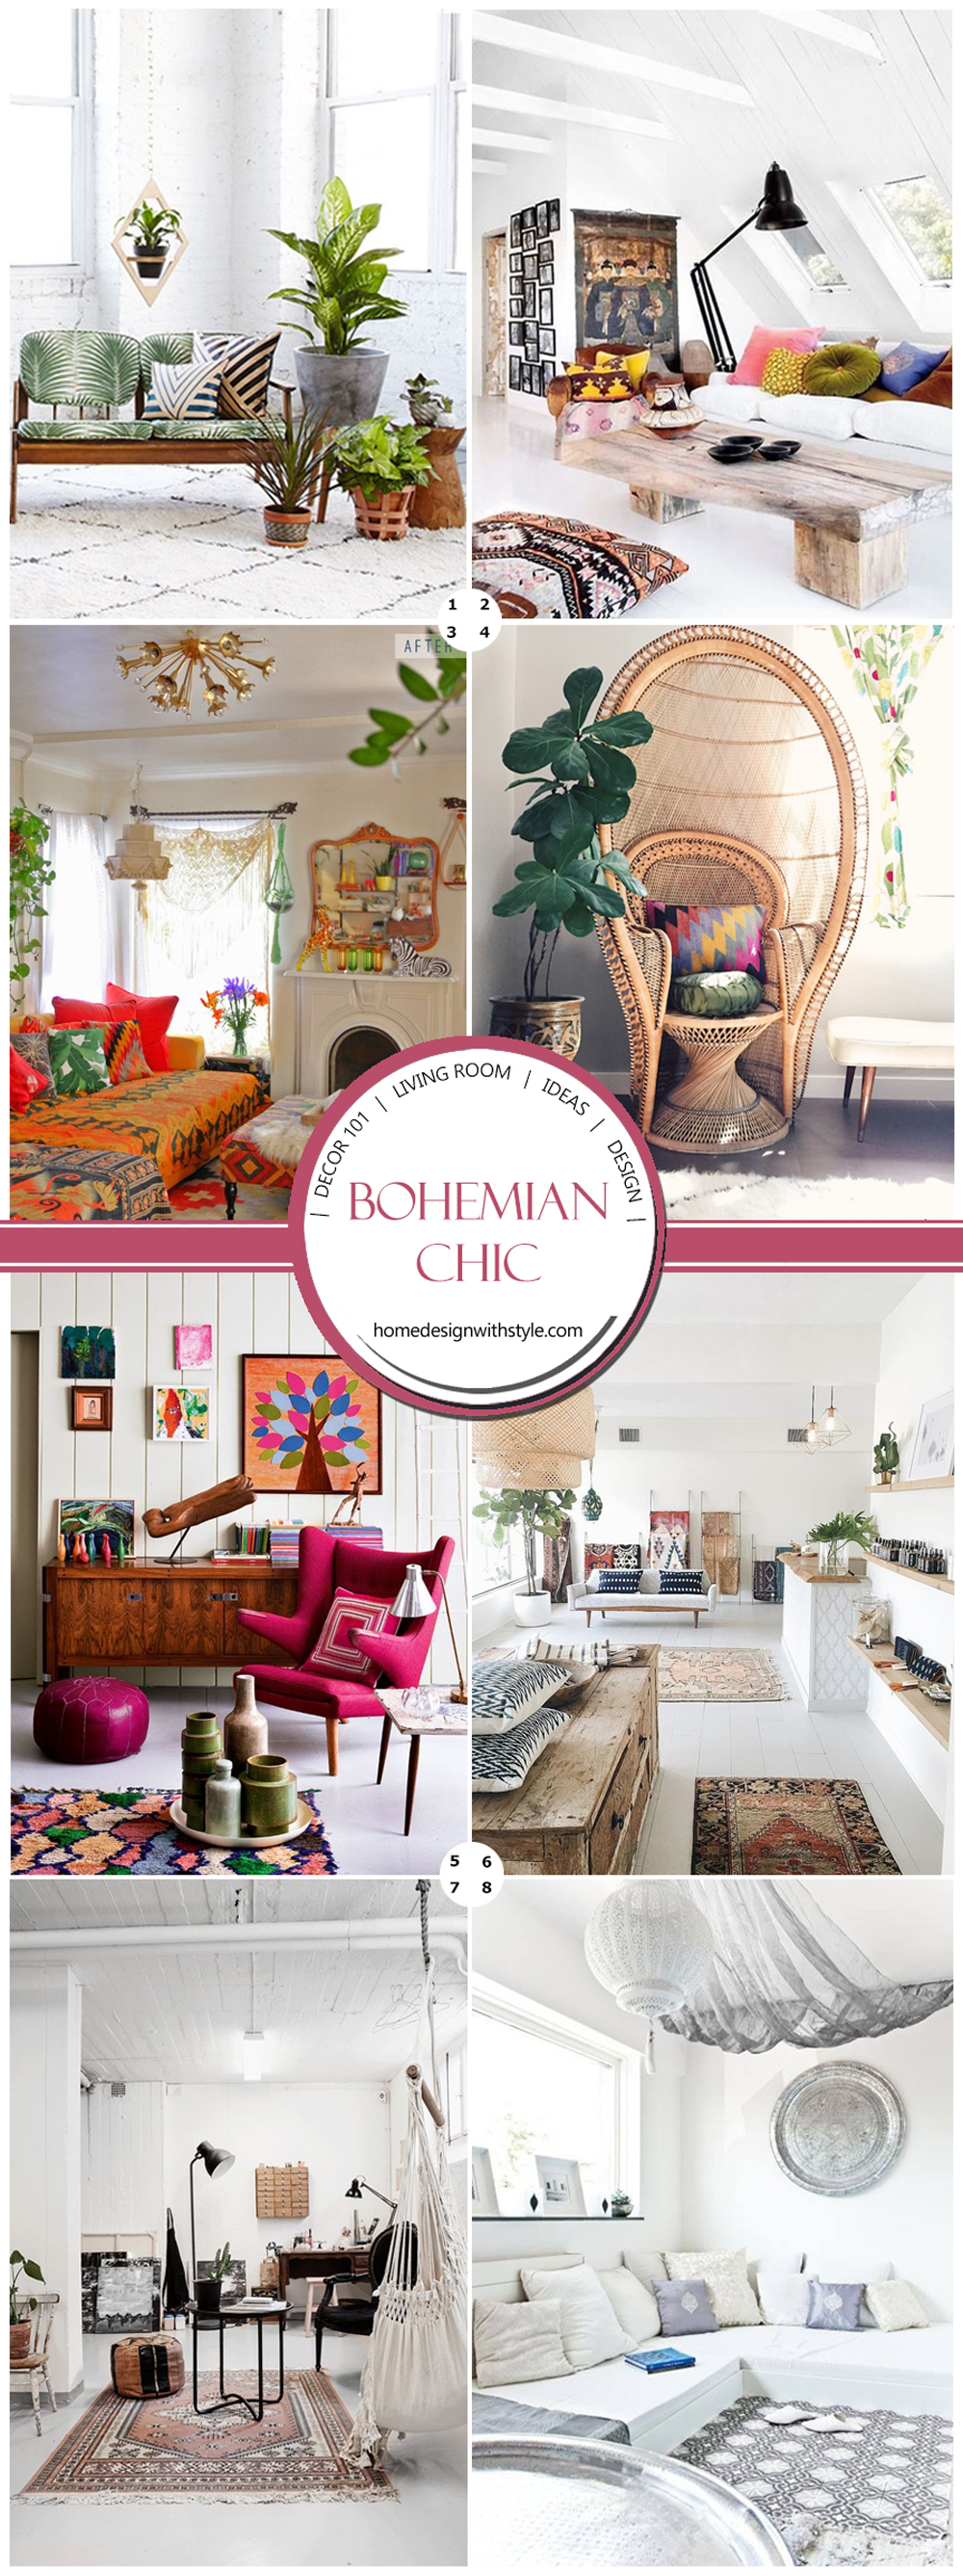 Decor 101 Bohemian Living Room Design Your Home With Style